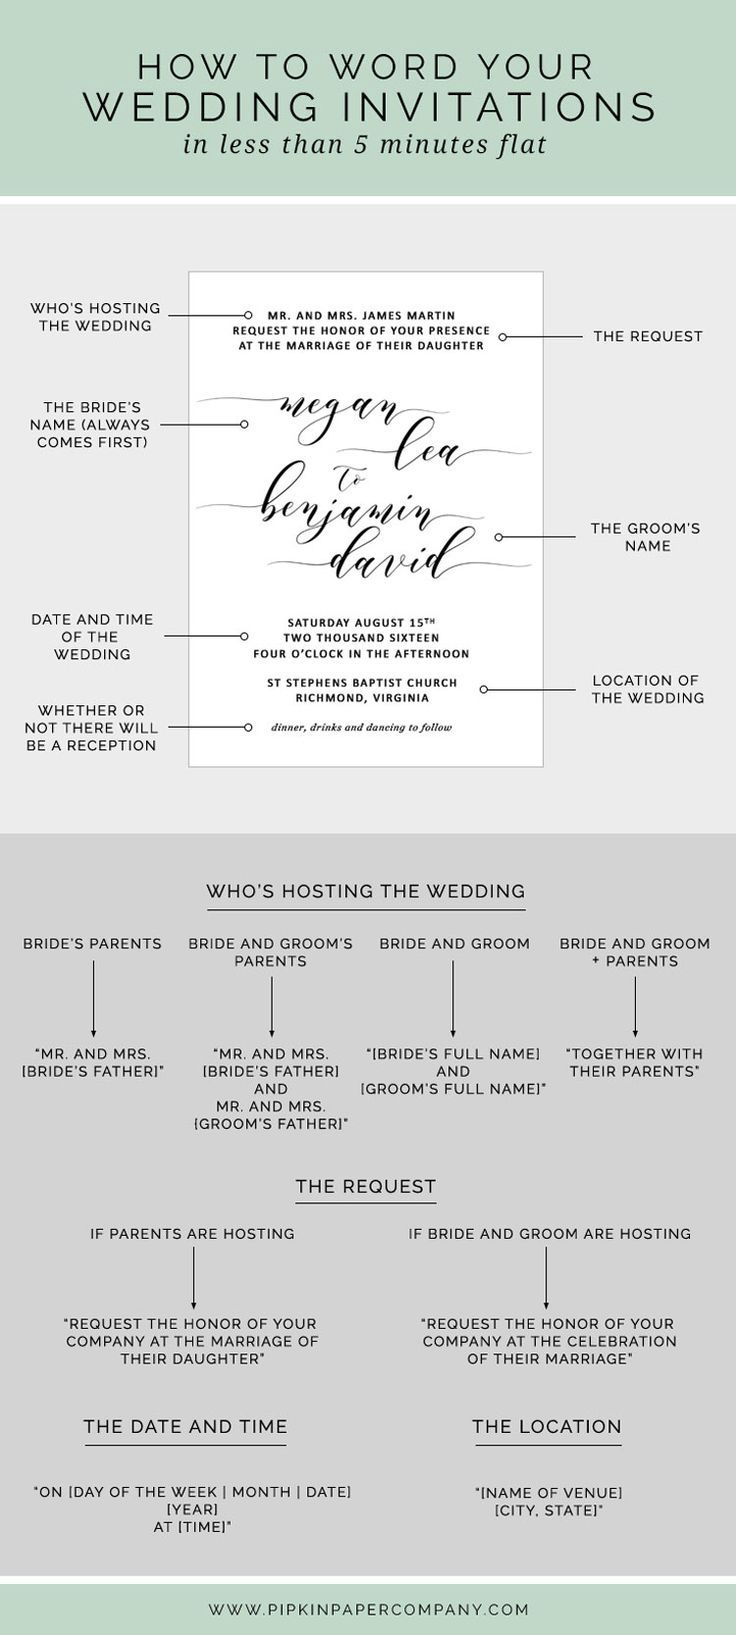 At A Loss For What To Say On Your Wedding Invitations Here S How Write Invitation Message In Less Than 5 Minutes Flat